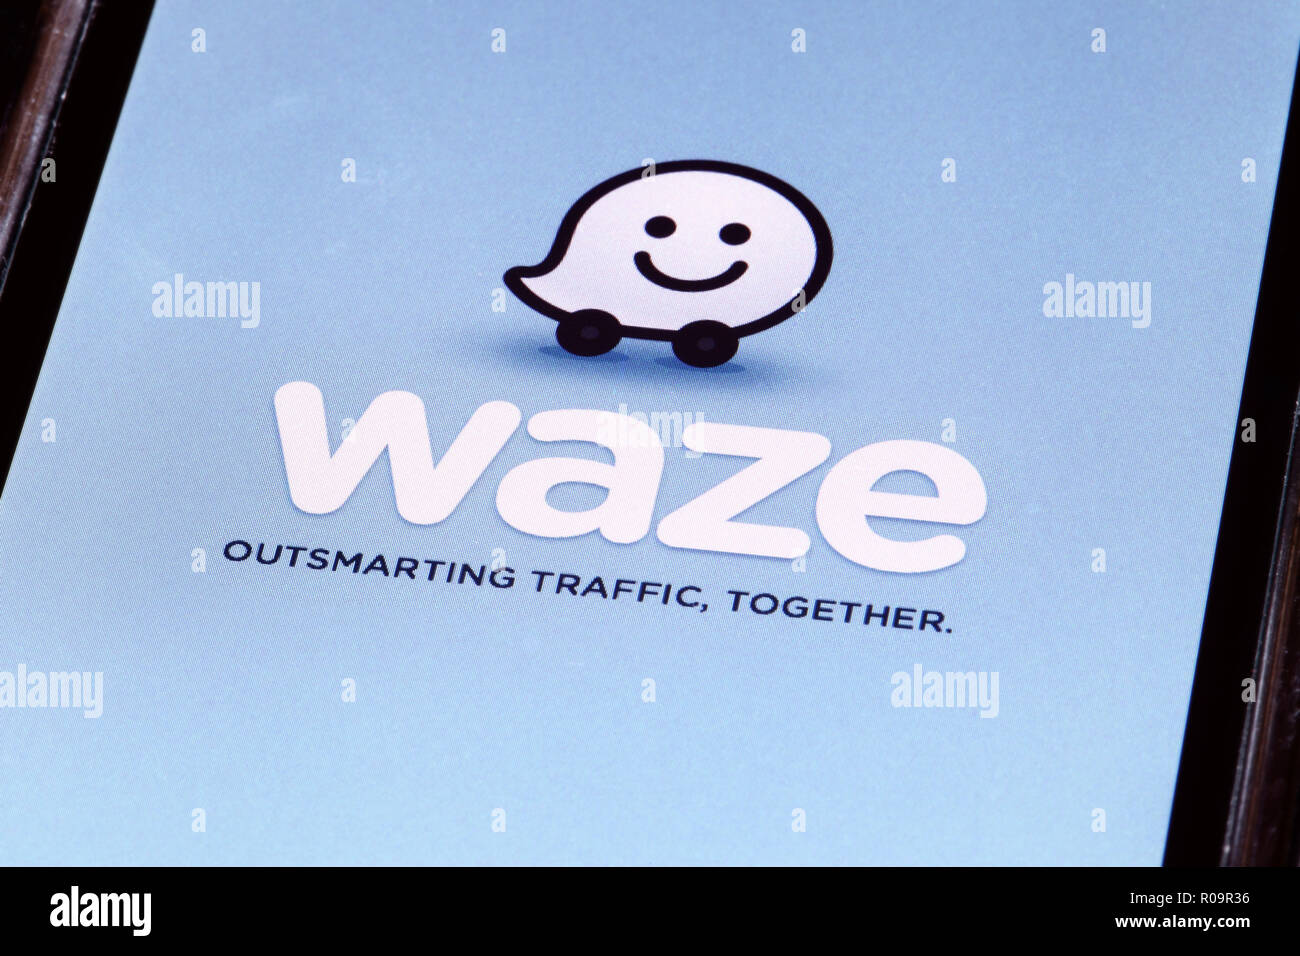 Waze outsmarting traffic together GPS in-car navigation sat-nav app running on an iphone - Stock Image